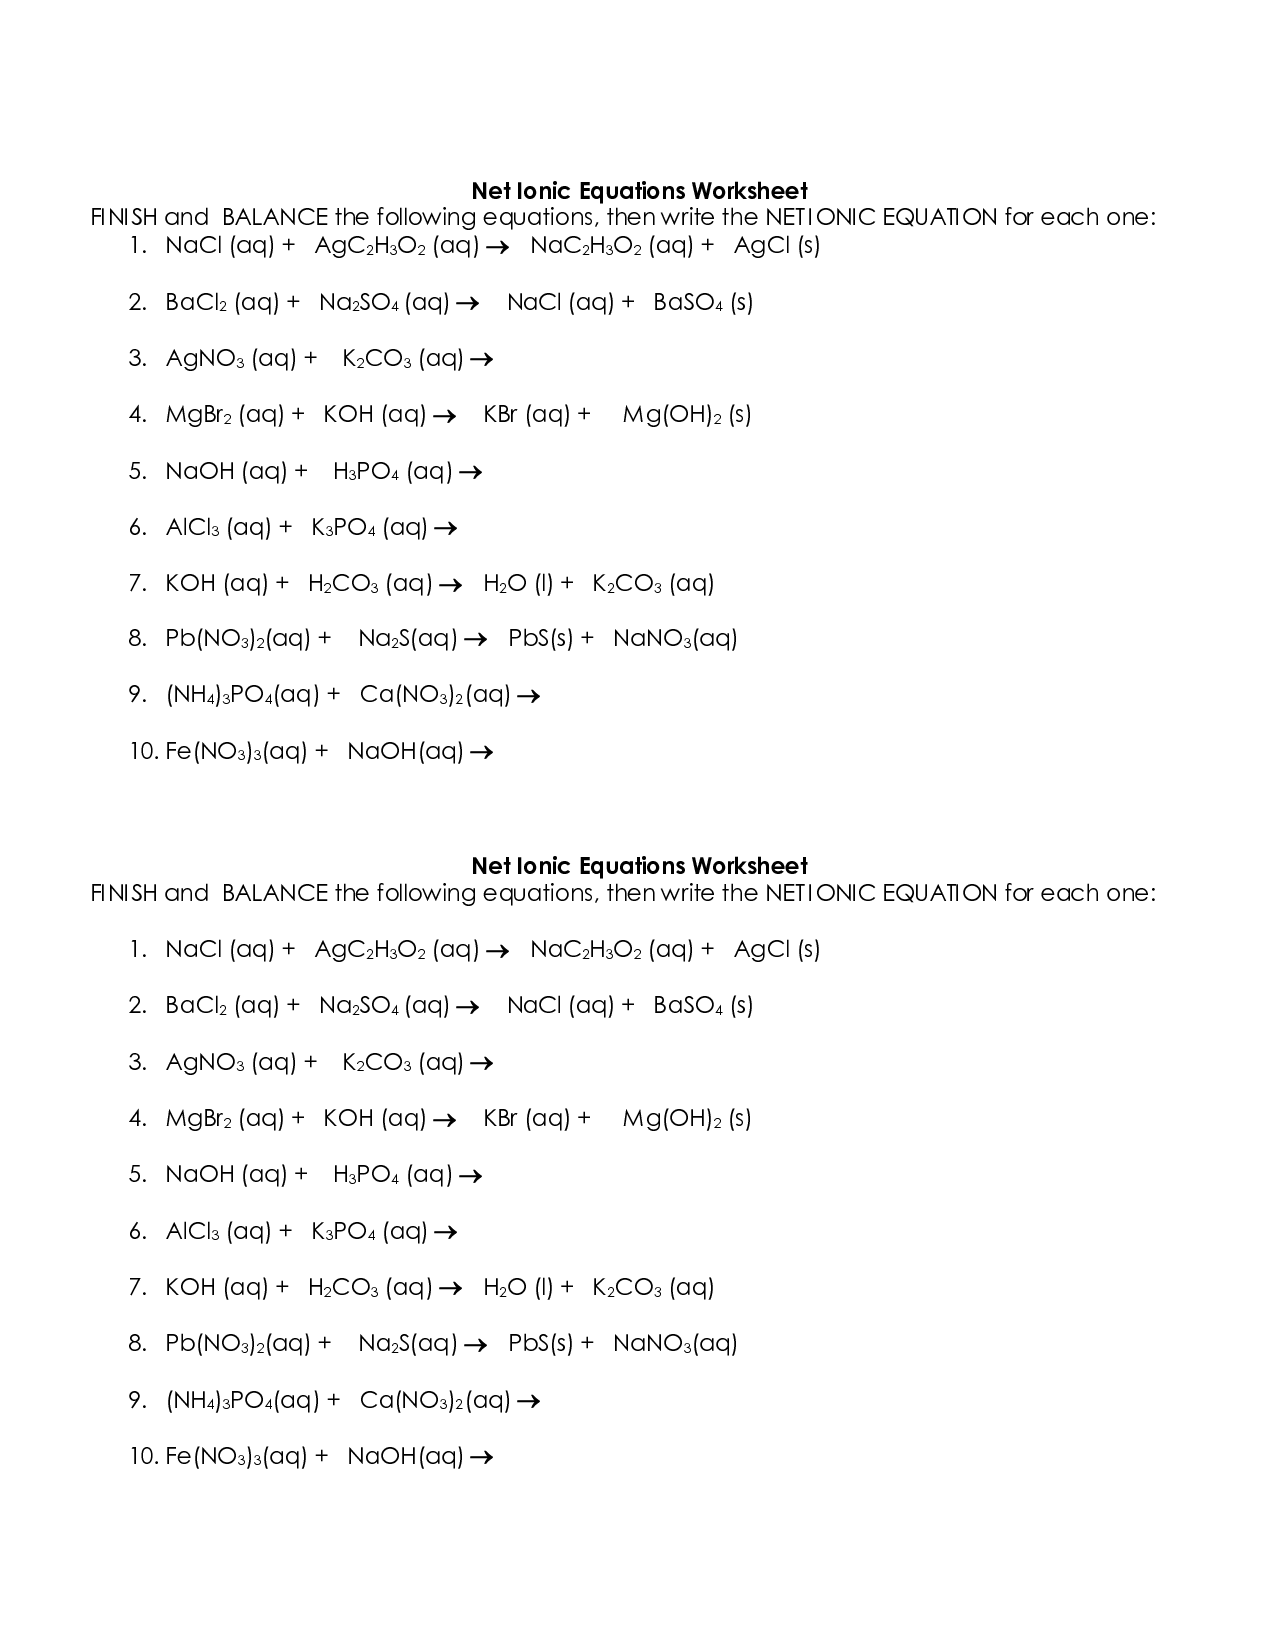 Net Ionic Equations Advanced Chem Worksheet 10 4 Answer Key